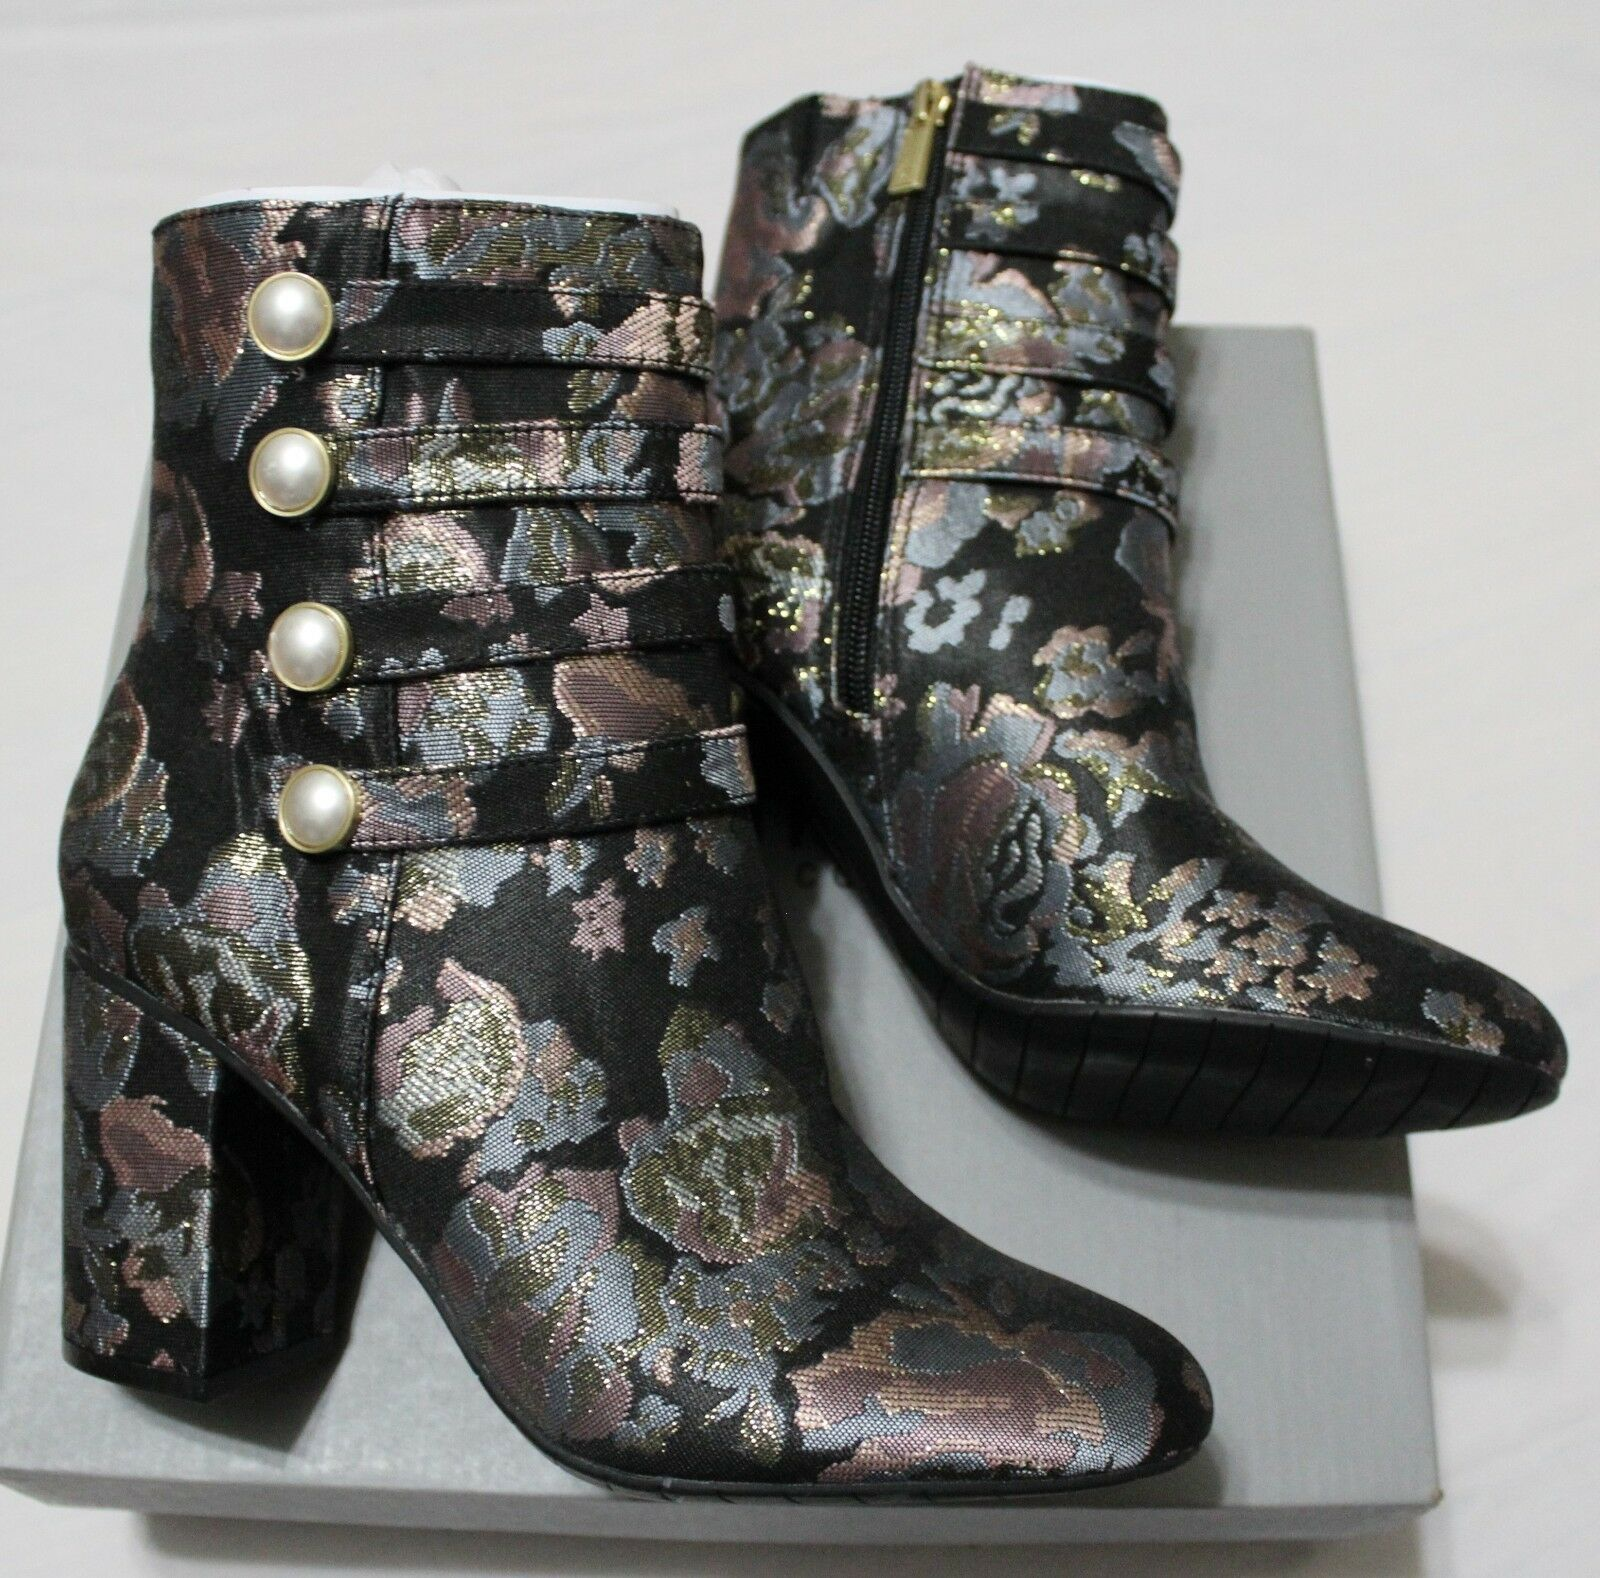 129 KENNETH COLE REACTION TIME TO BE BLK MULTI FLORAL ANKLE BOOTS US 7.5M